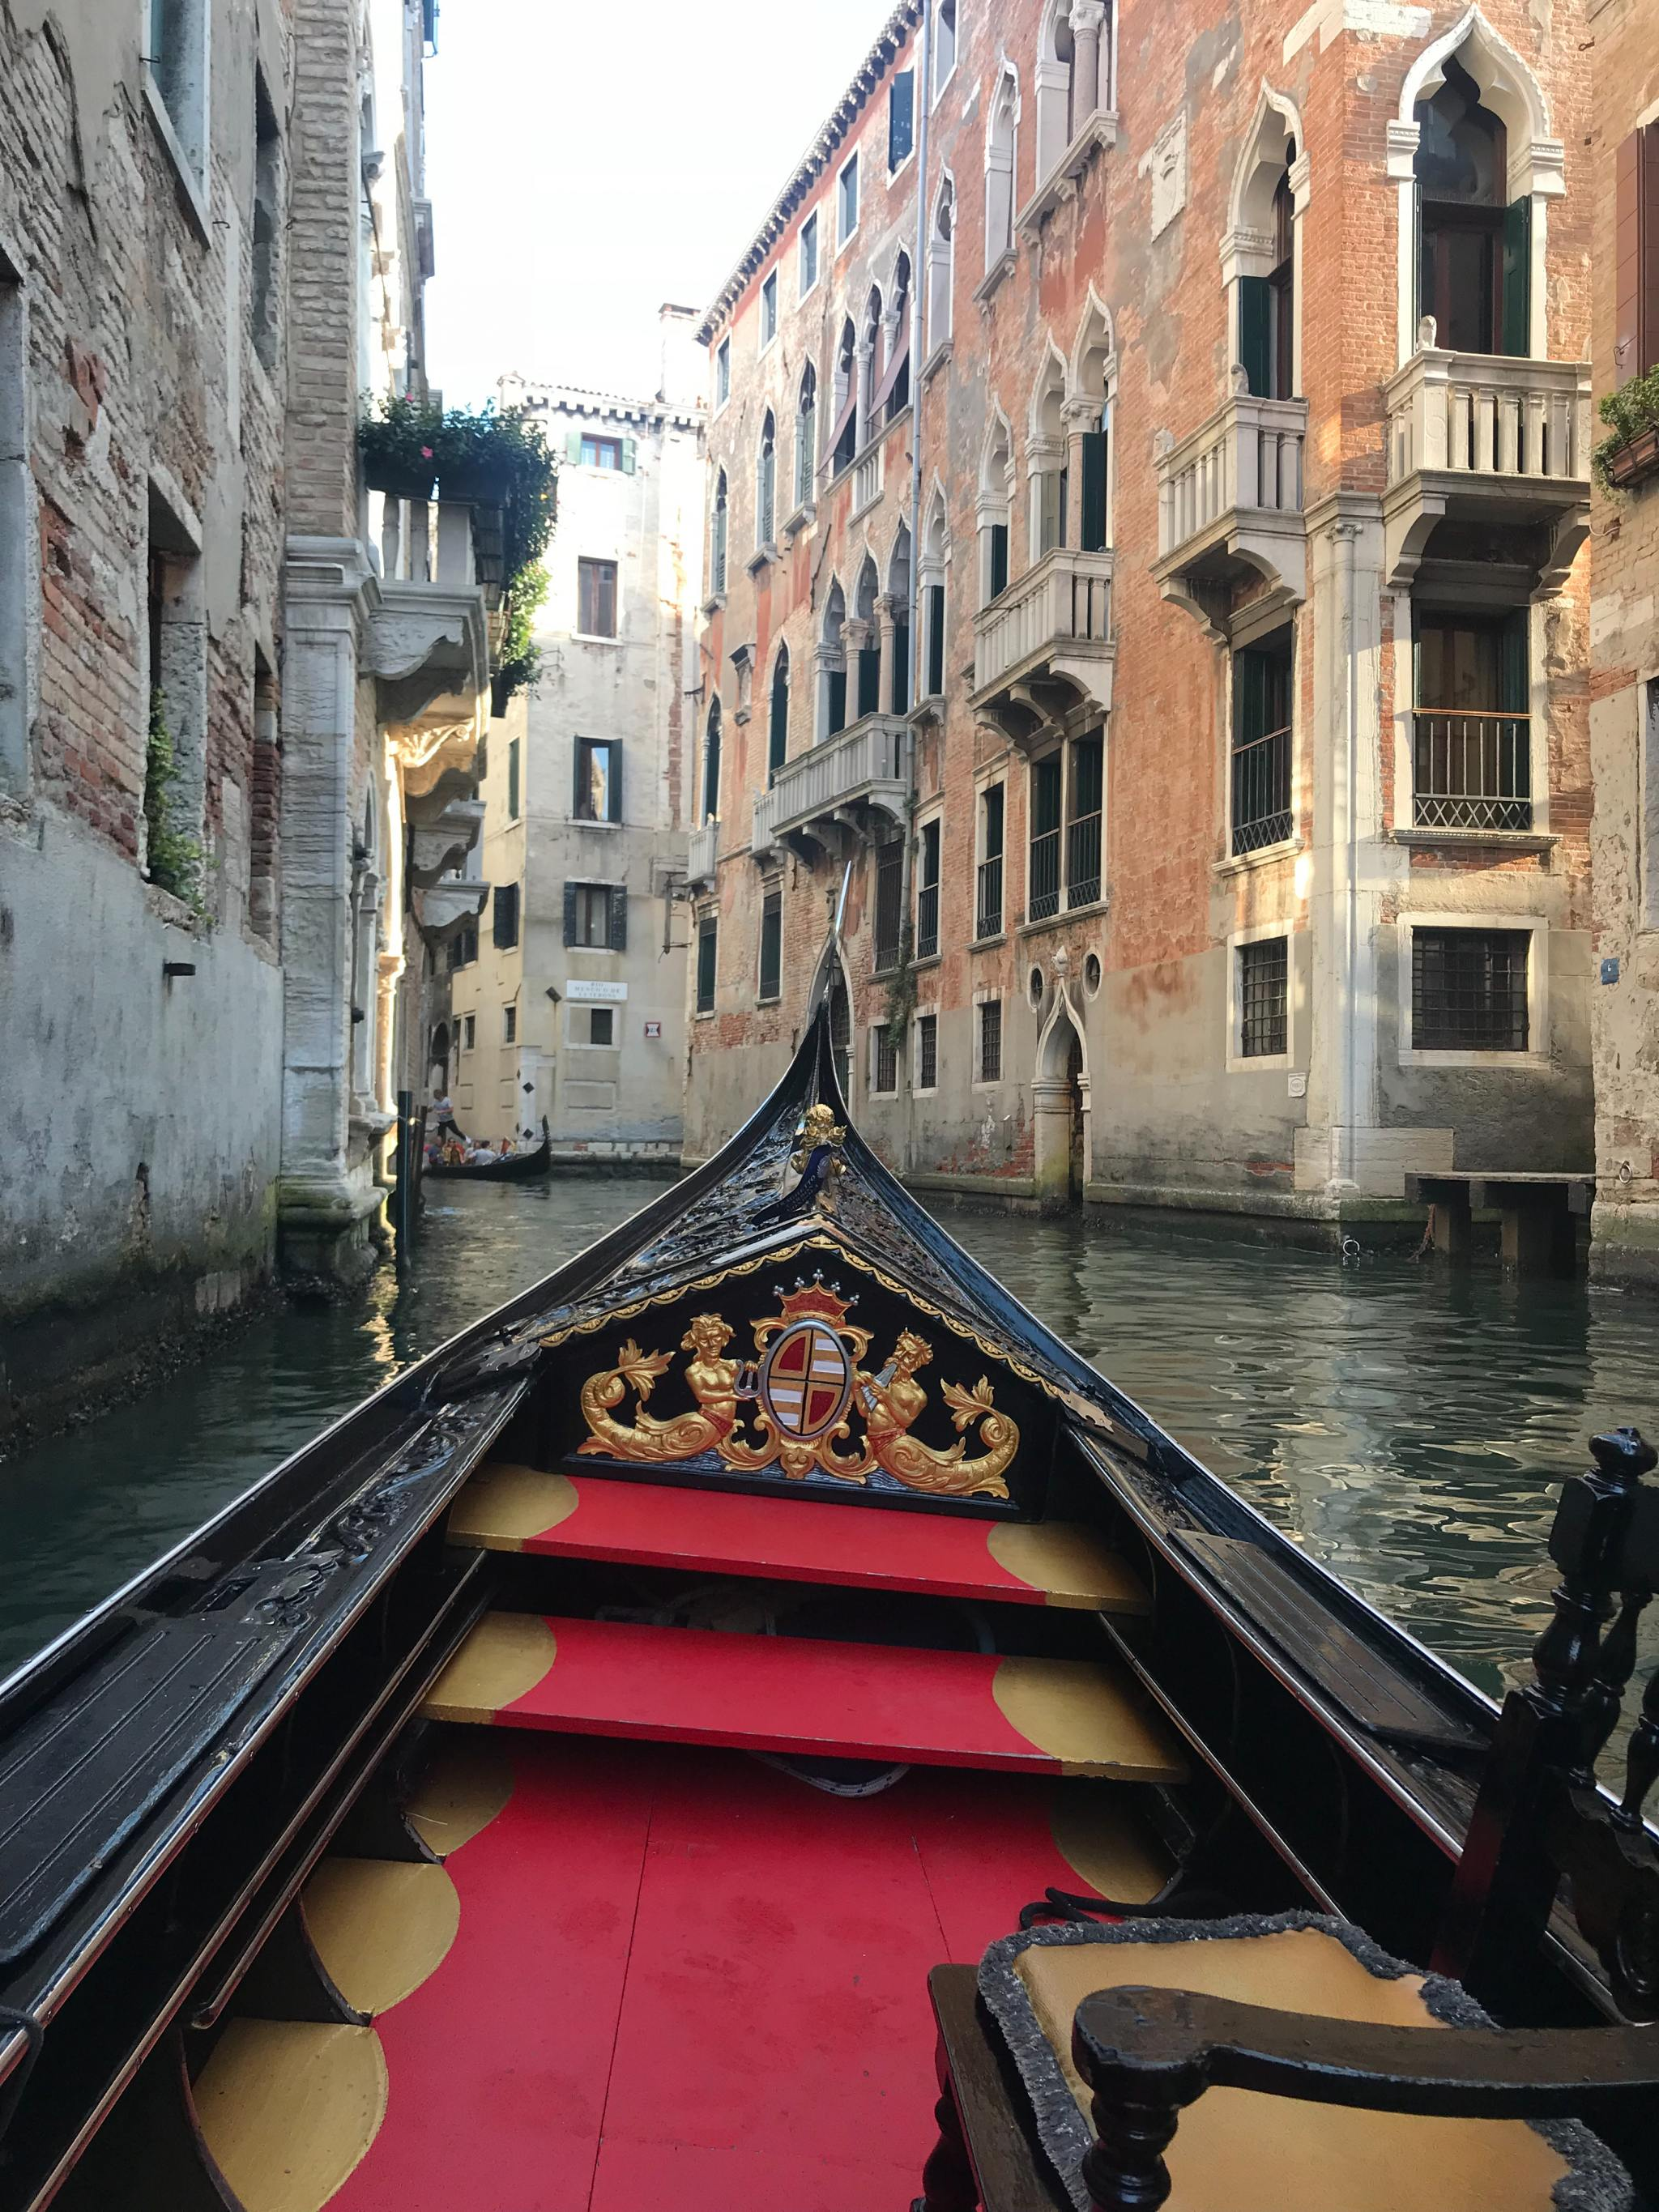 Gondola - 3 days in Venice